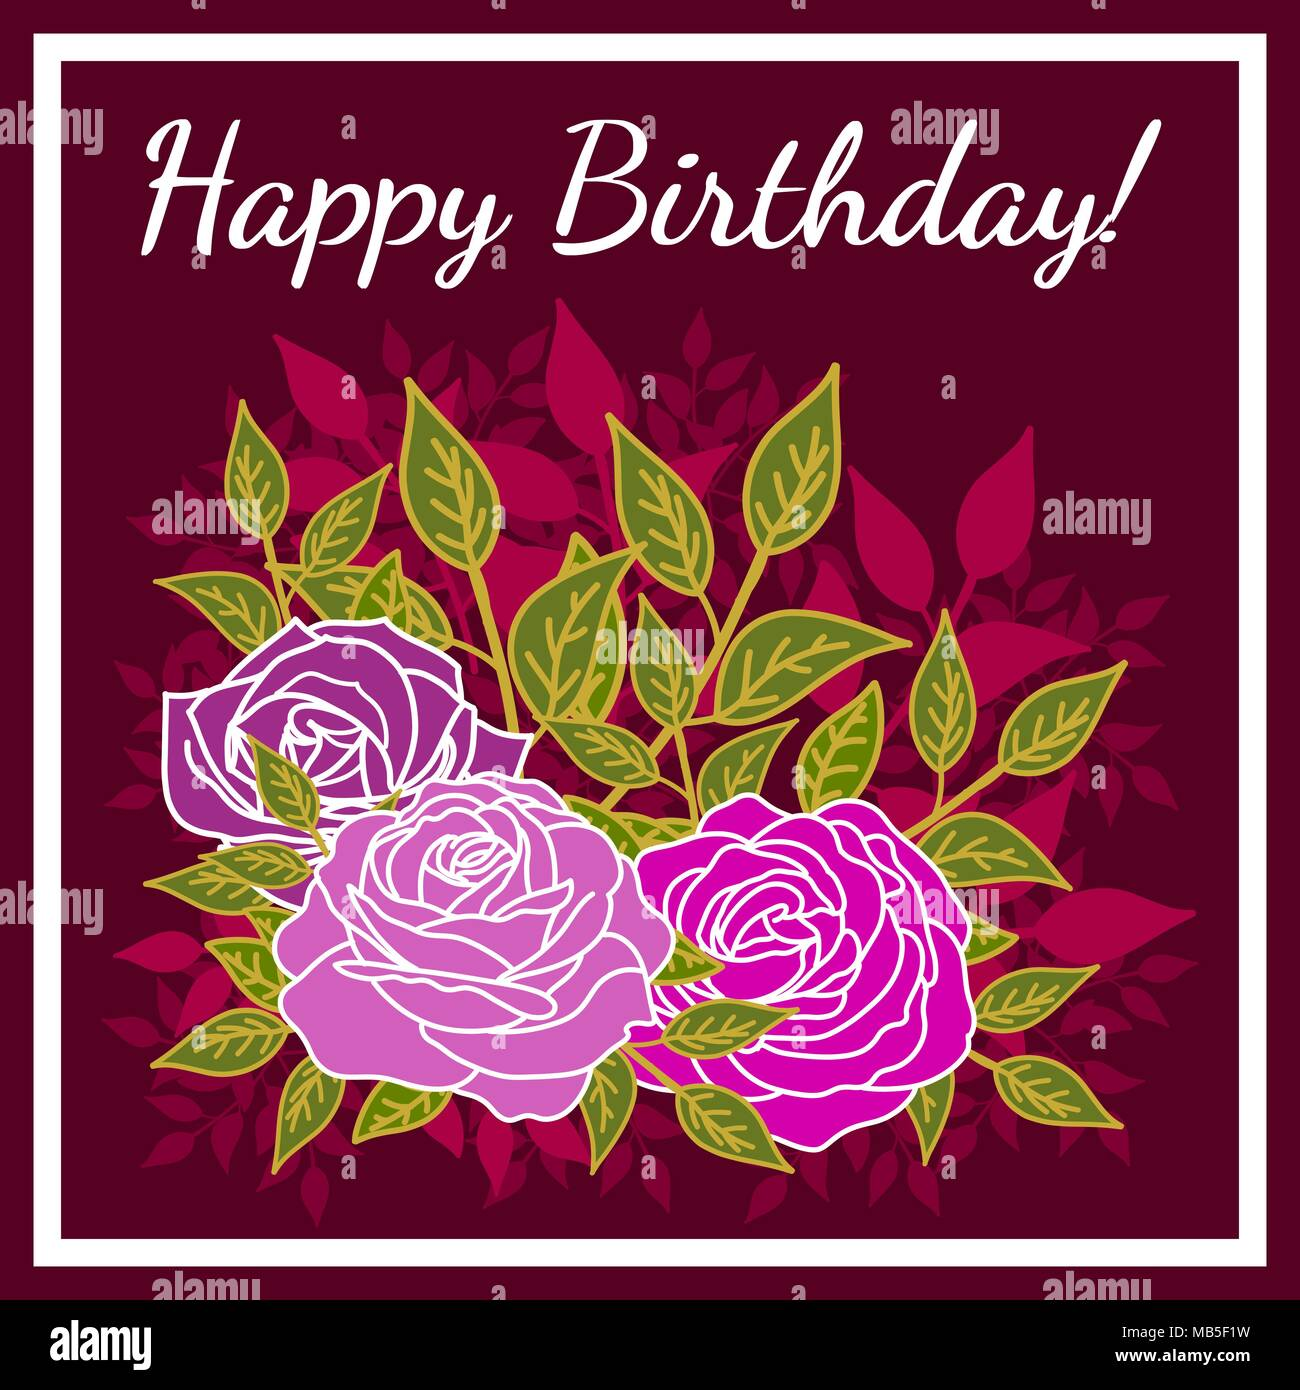 Floral Design With Stylized Roses And Message Of Congratulations For